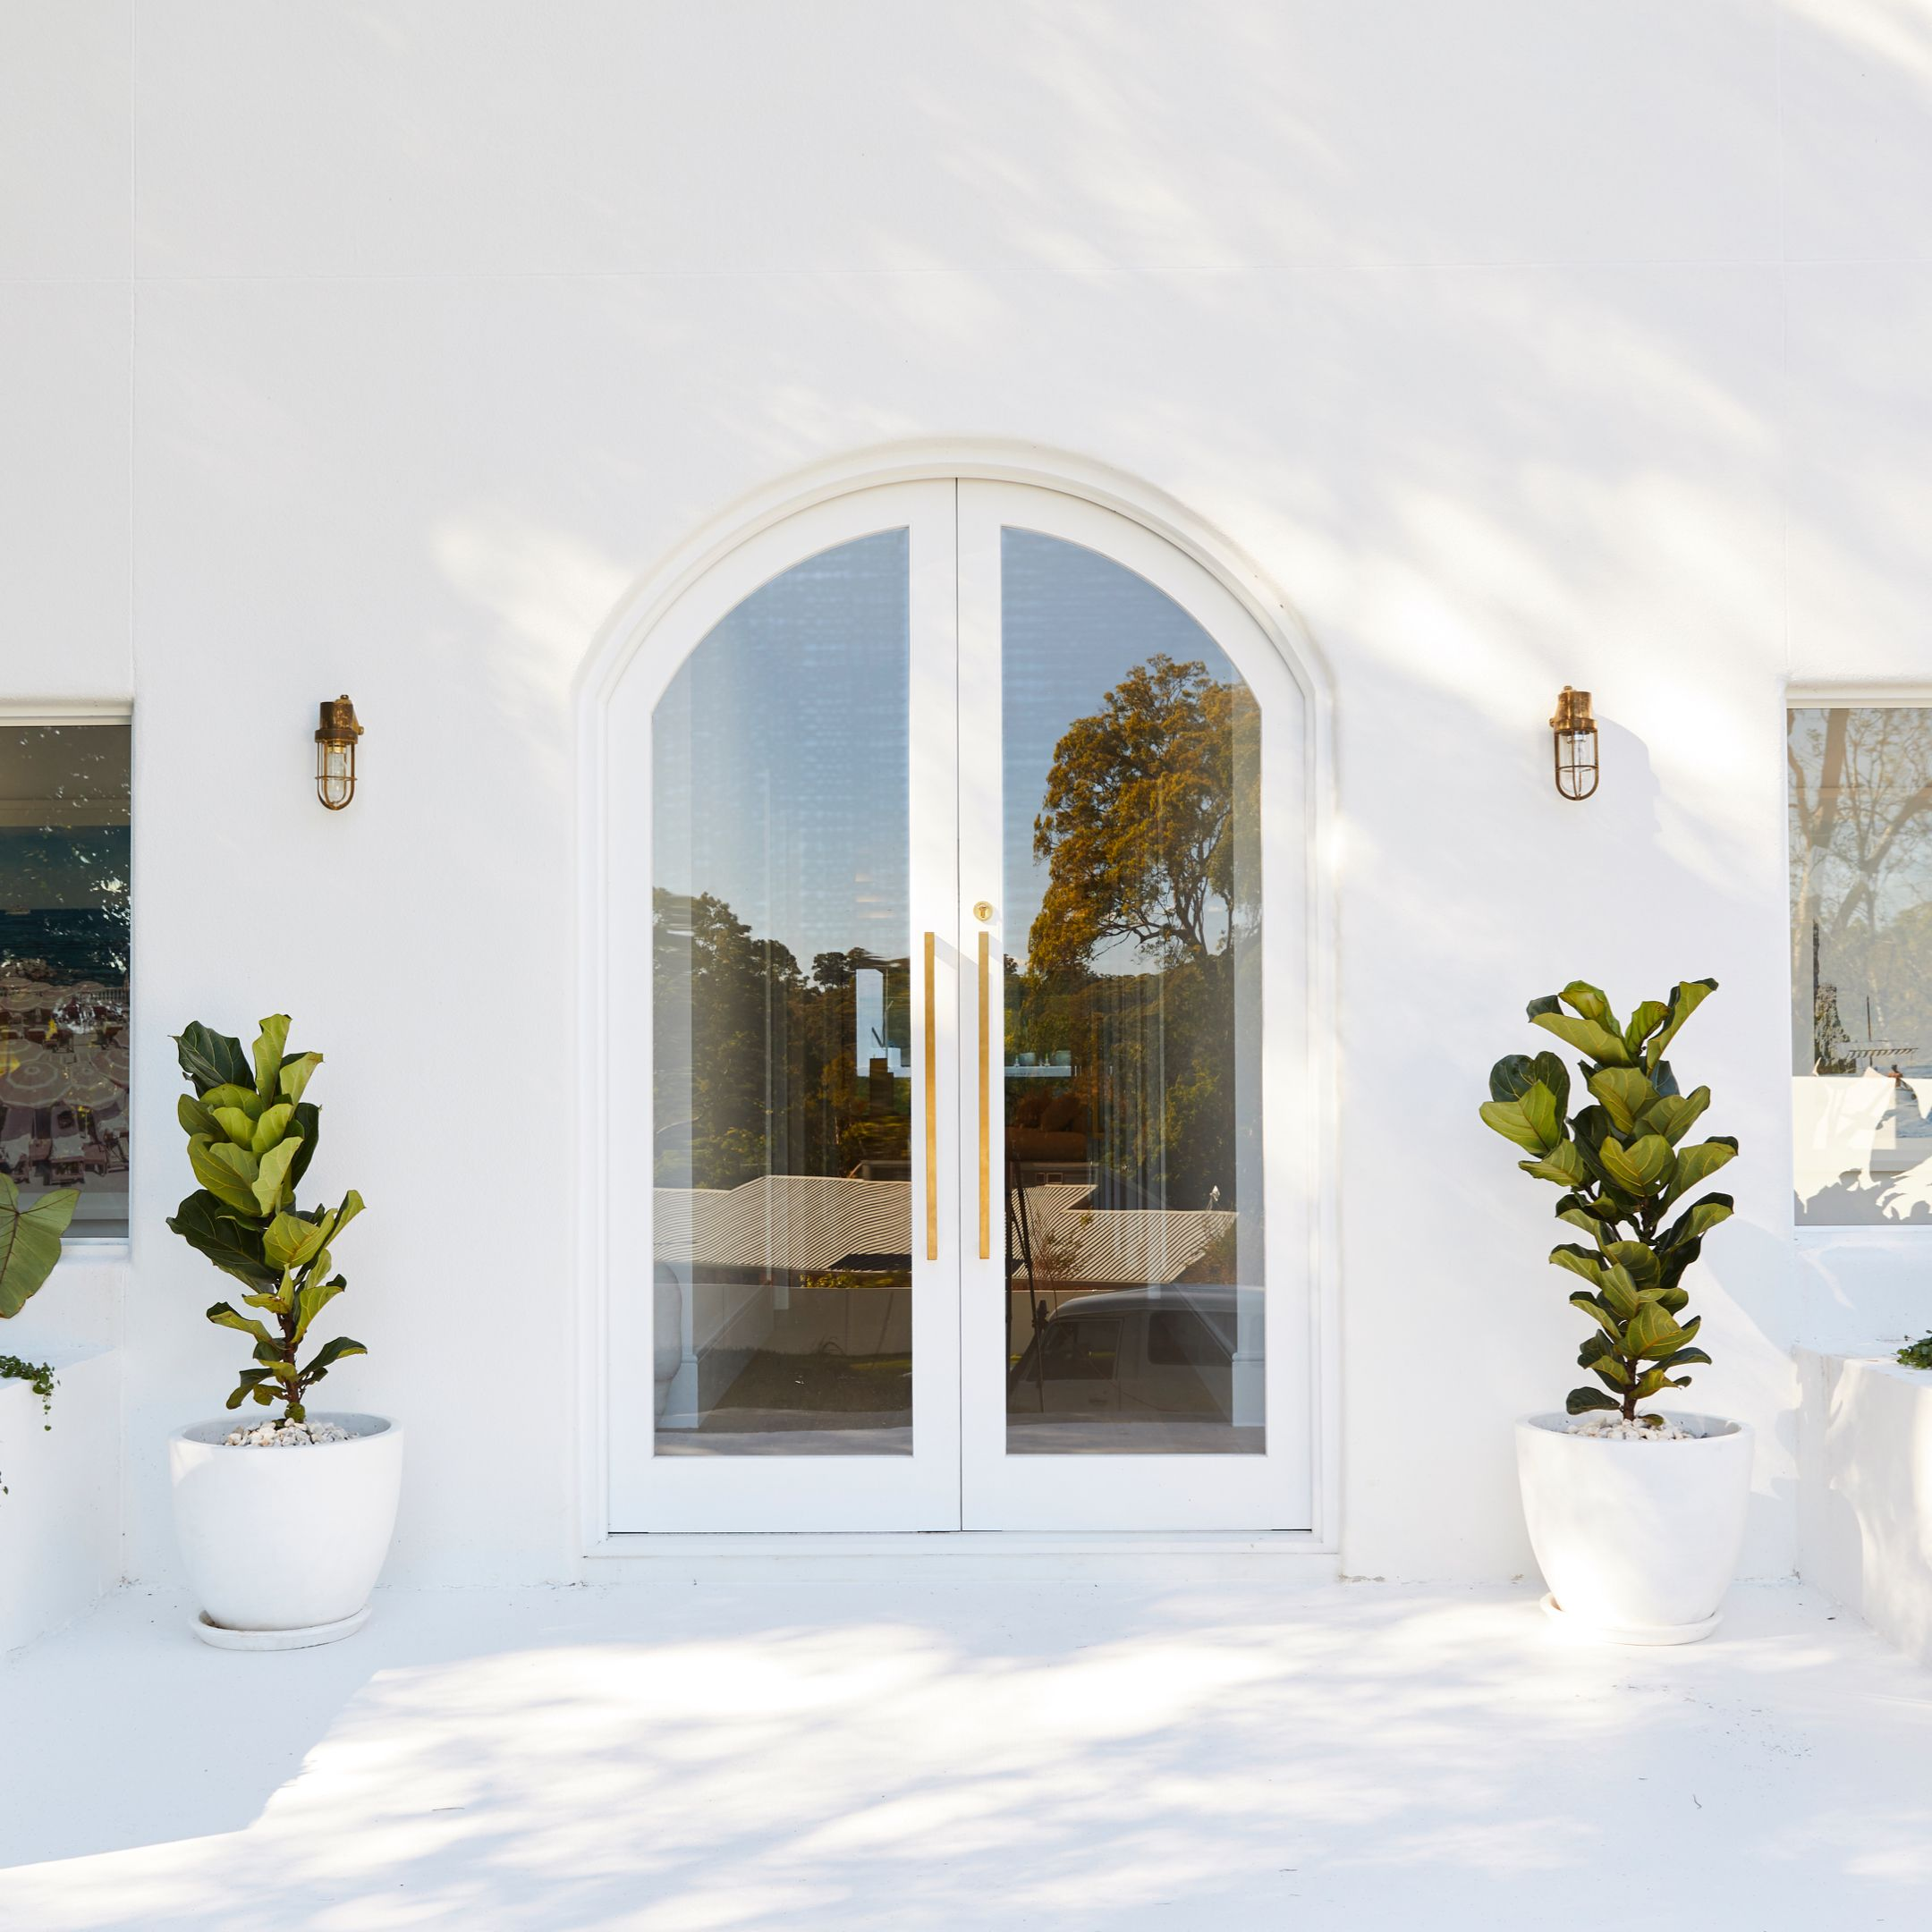 Arched Doorways House 10 In 2020 House Dream Home Design Architecture House